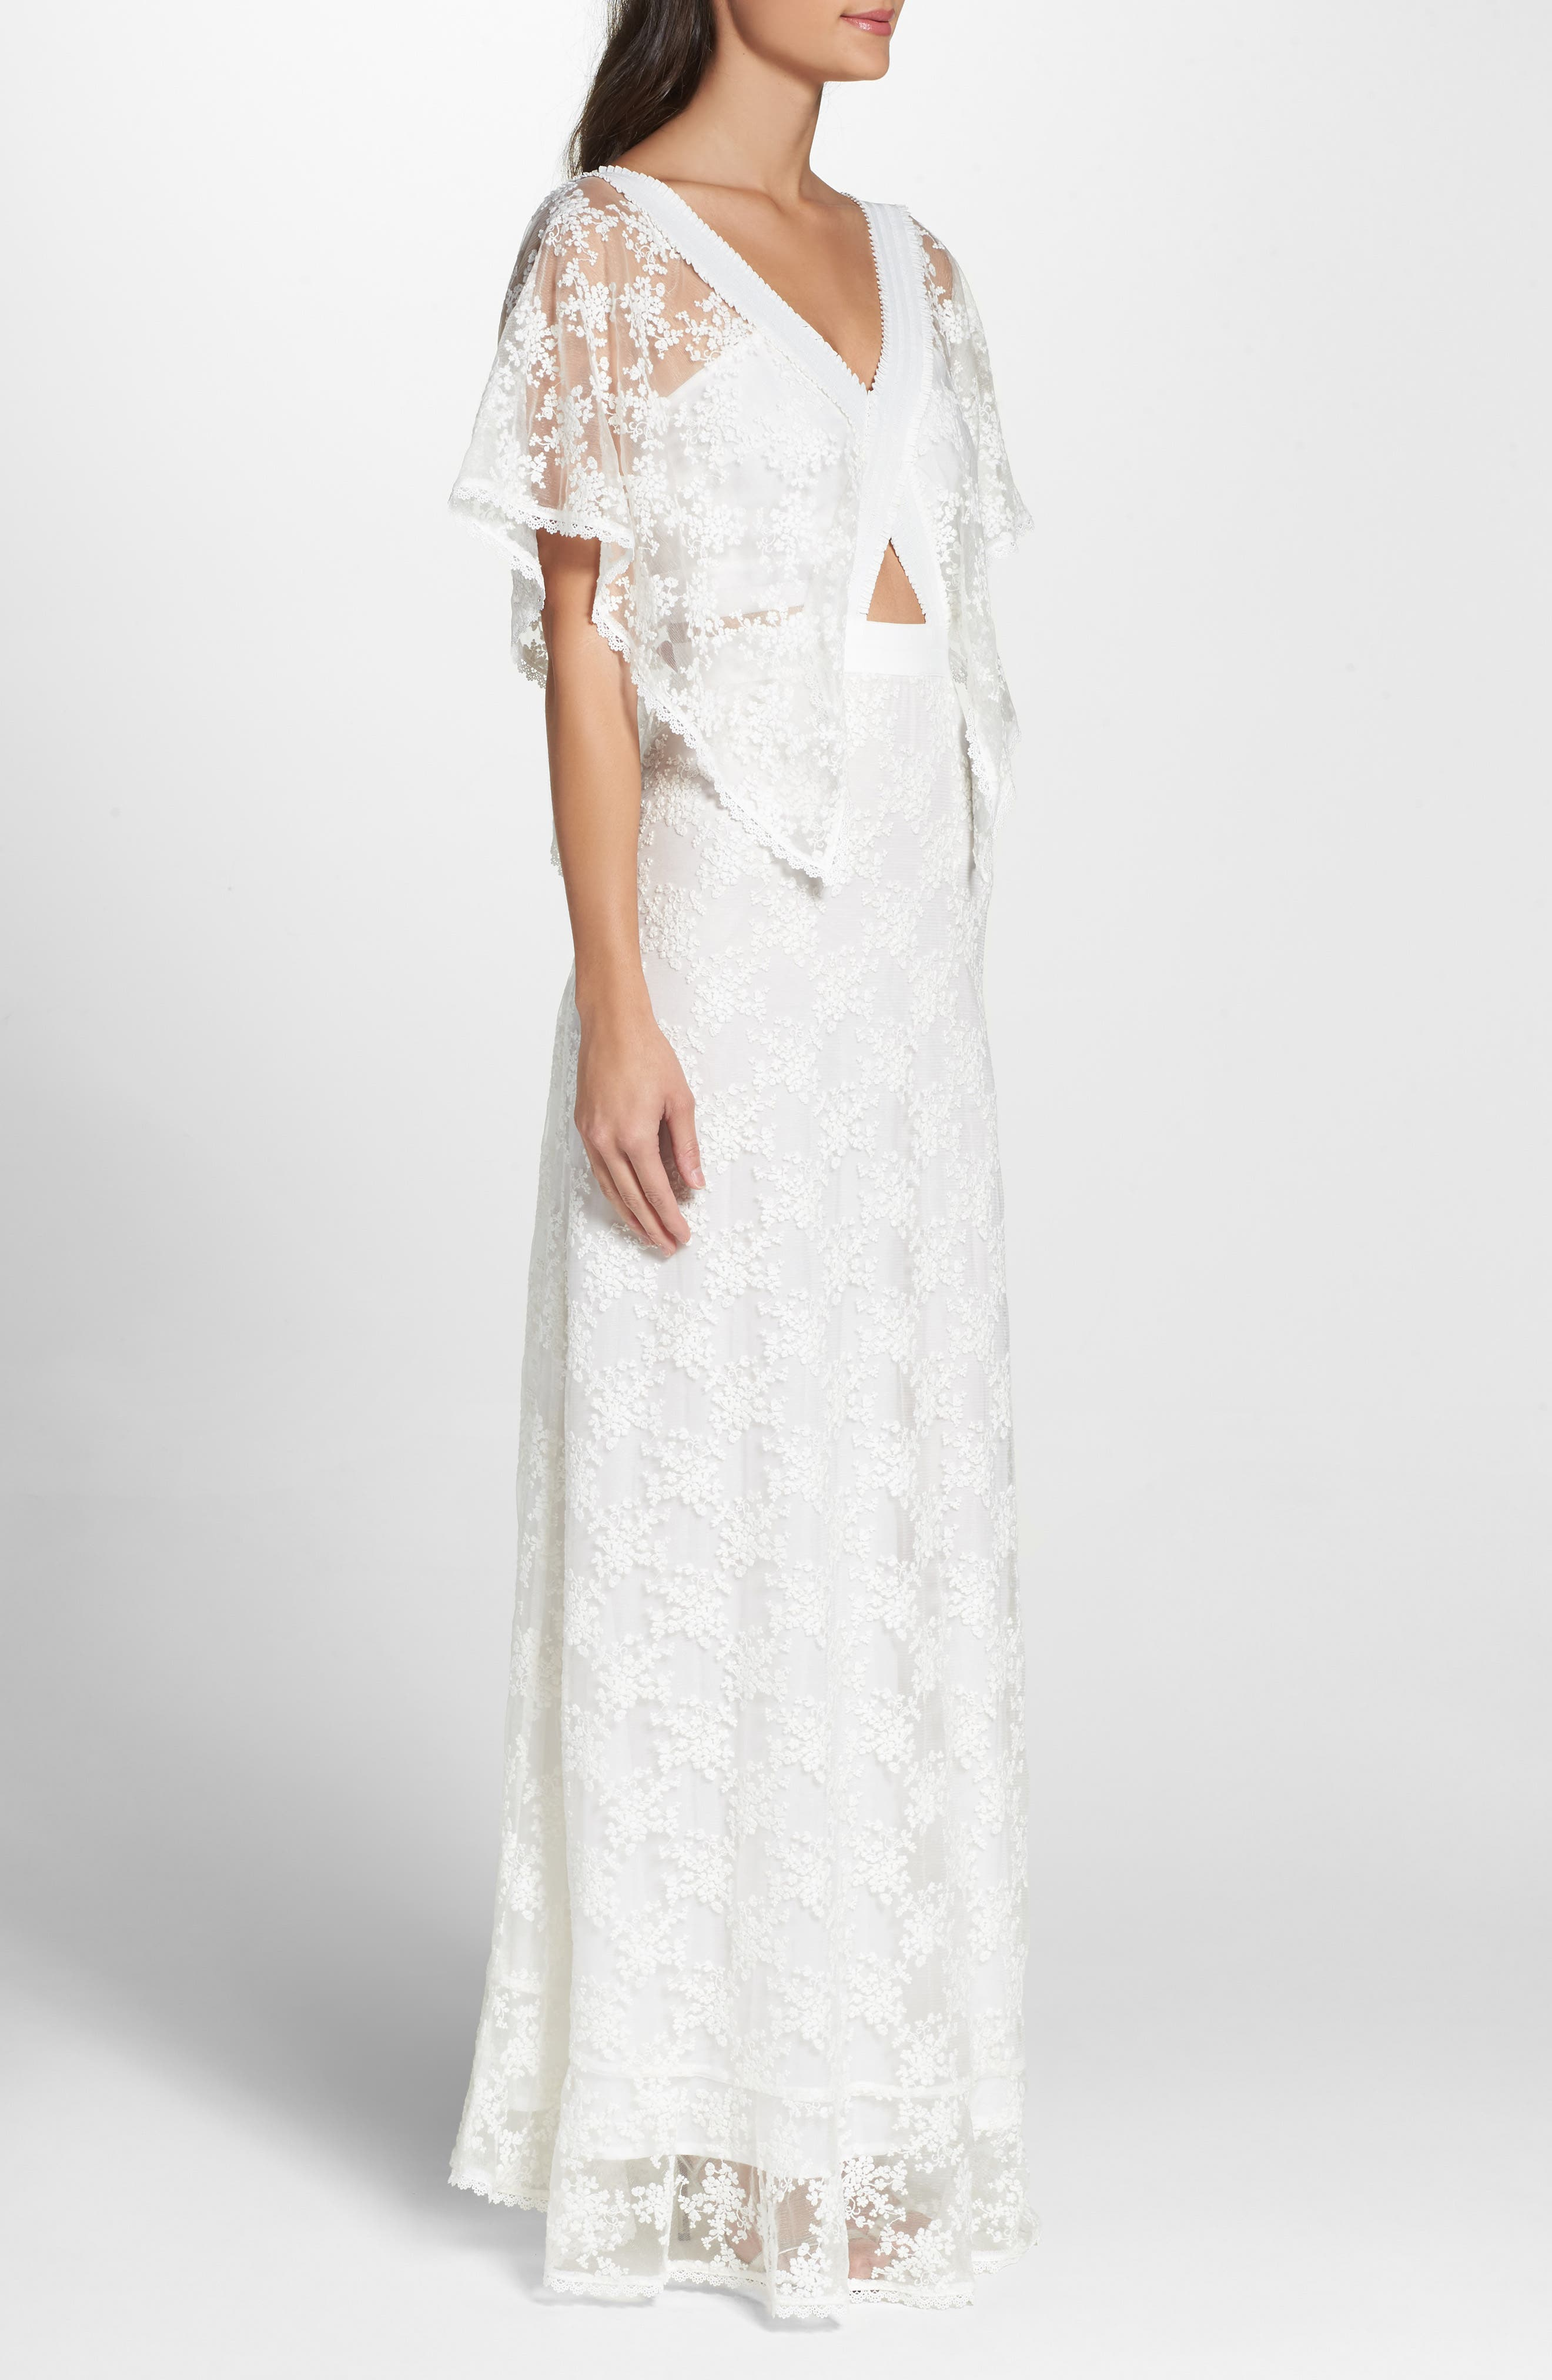 August Handkerchief Sleeve Embroidered Long Dress,                             Alternate thumbnail 3, color,                             Ivory